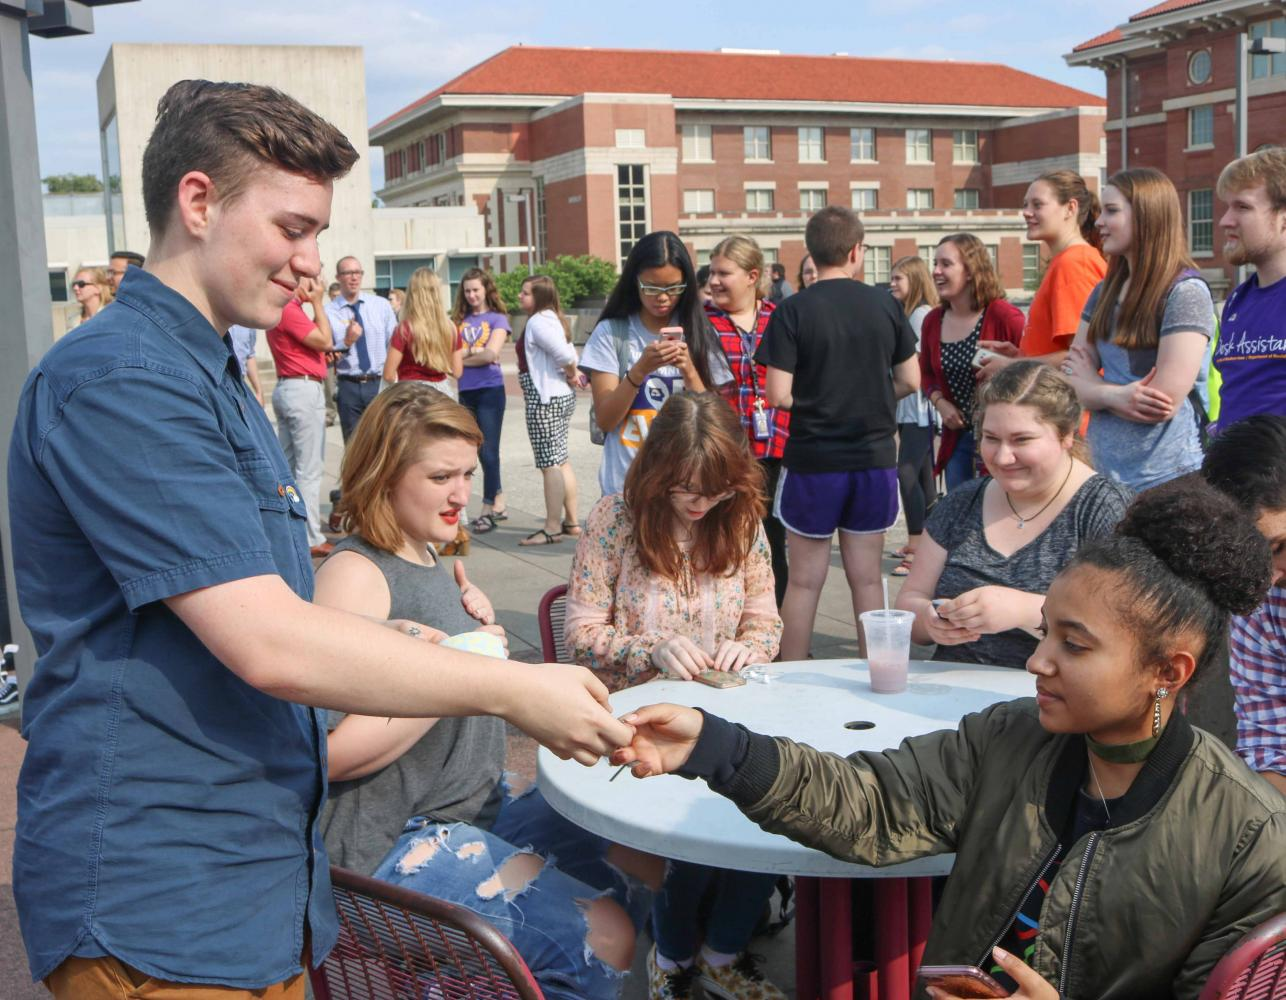 Students gathered on top of Maucker Union in response to the events at Charlottesville.